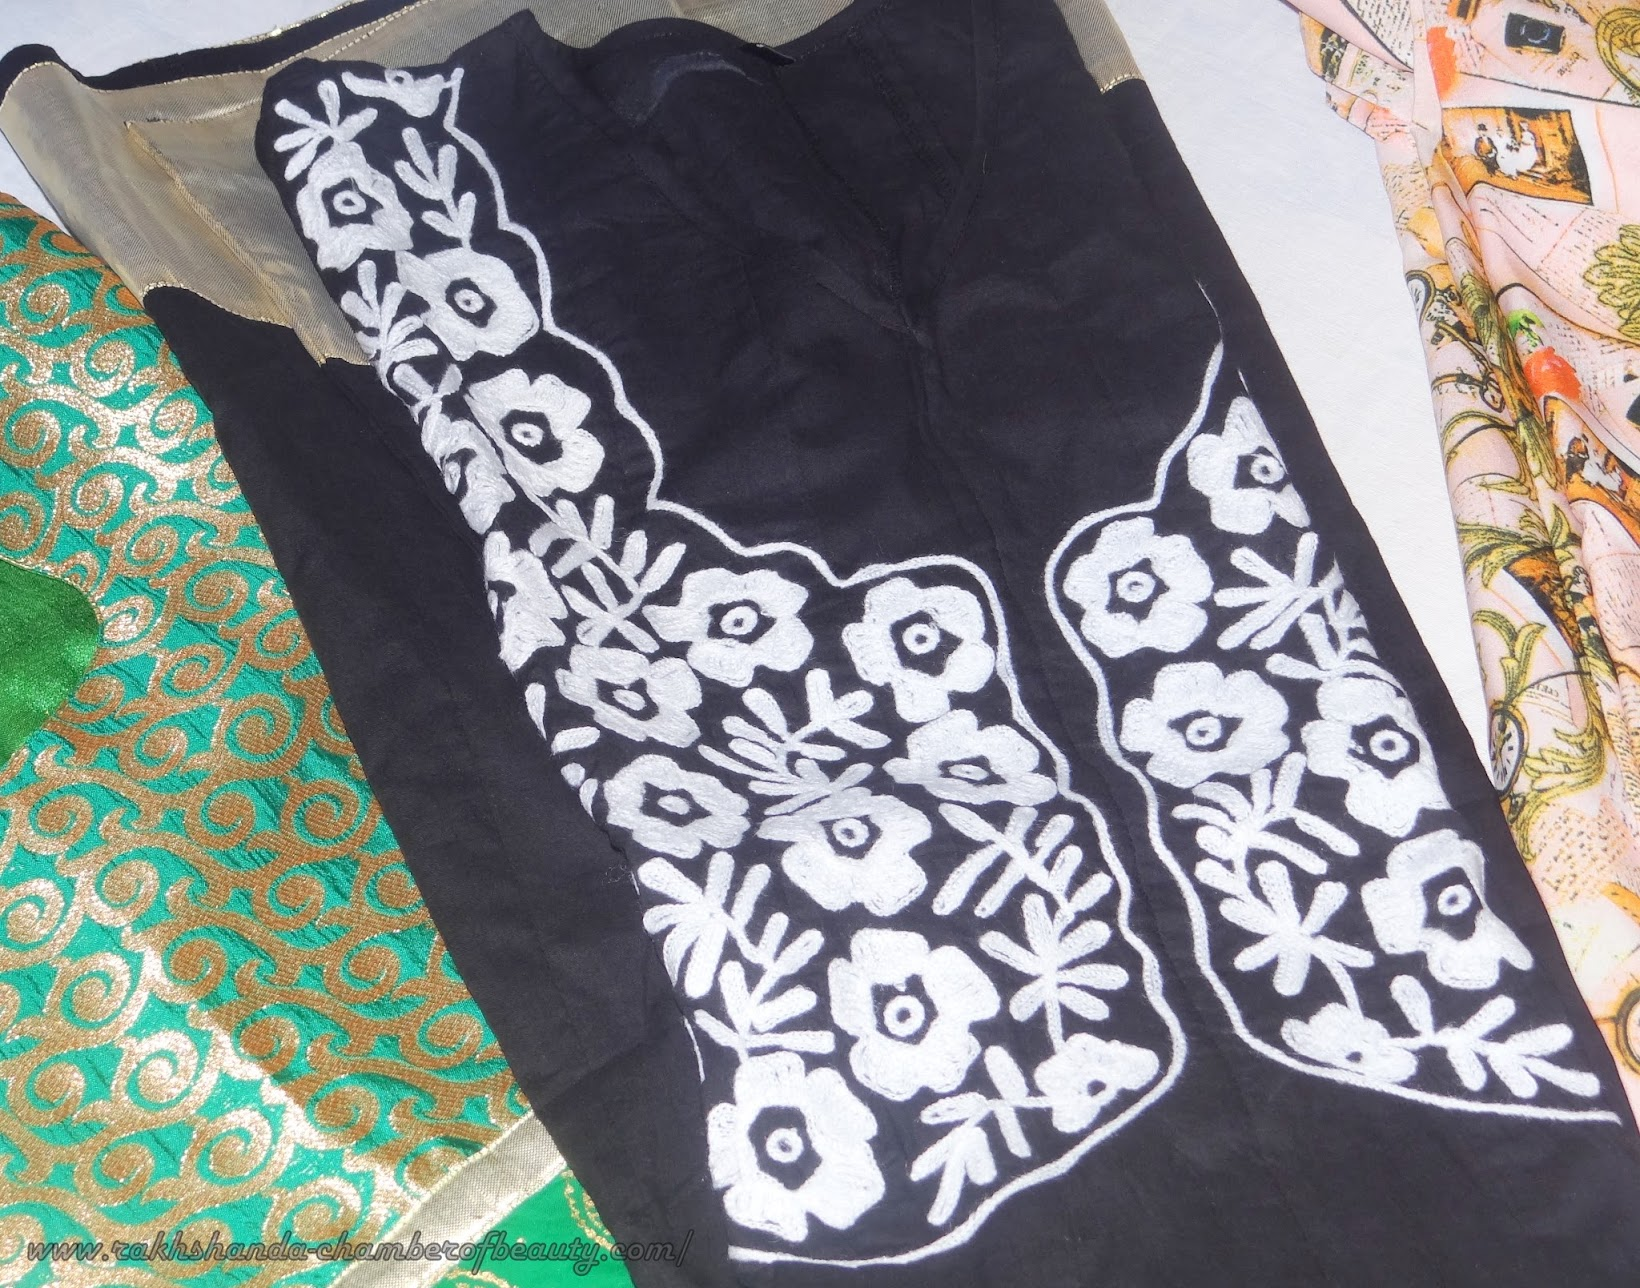 My Jabong haul   Are online store sales worth it?, Online shopping tips, Ethnic wear, Indian fashion blogger